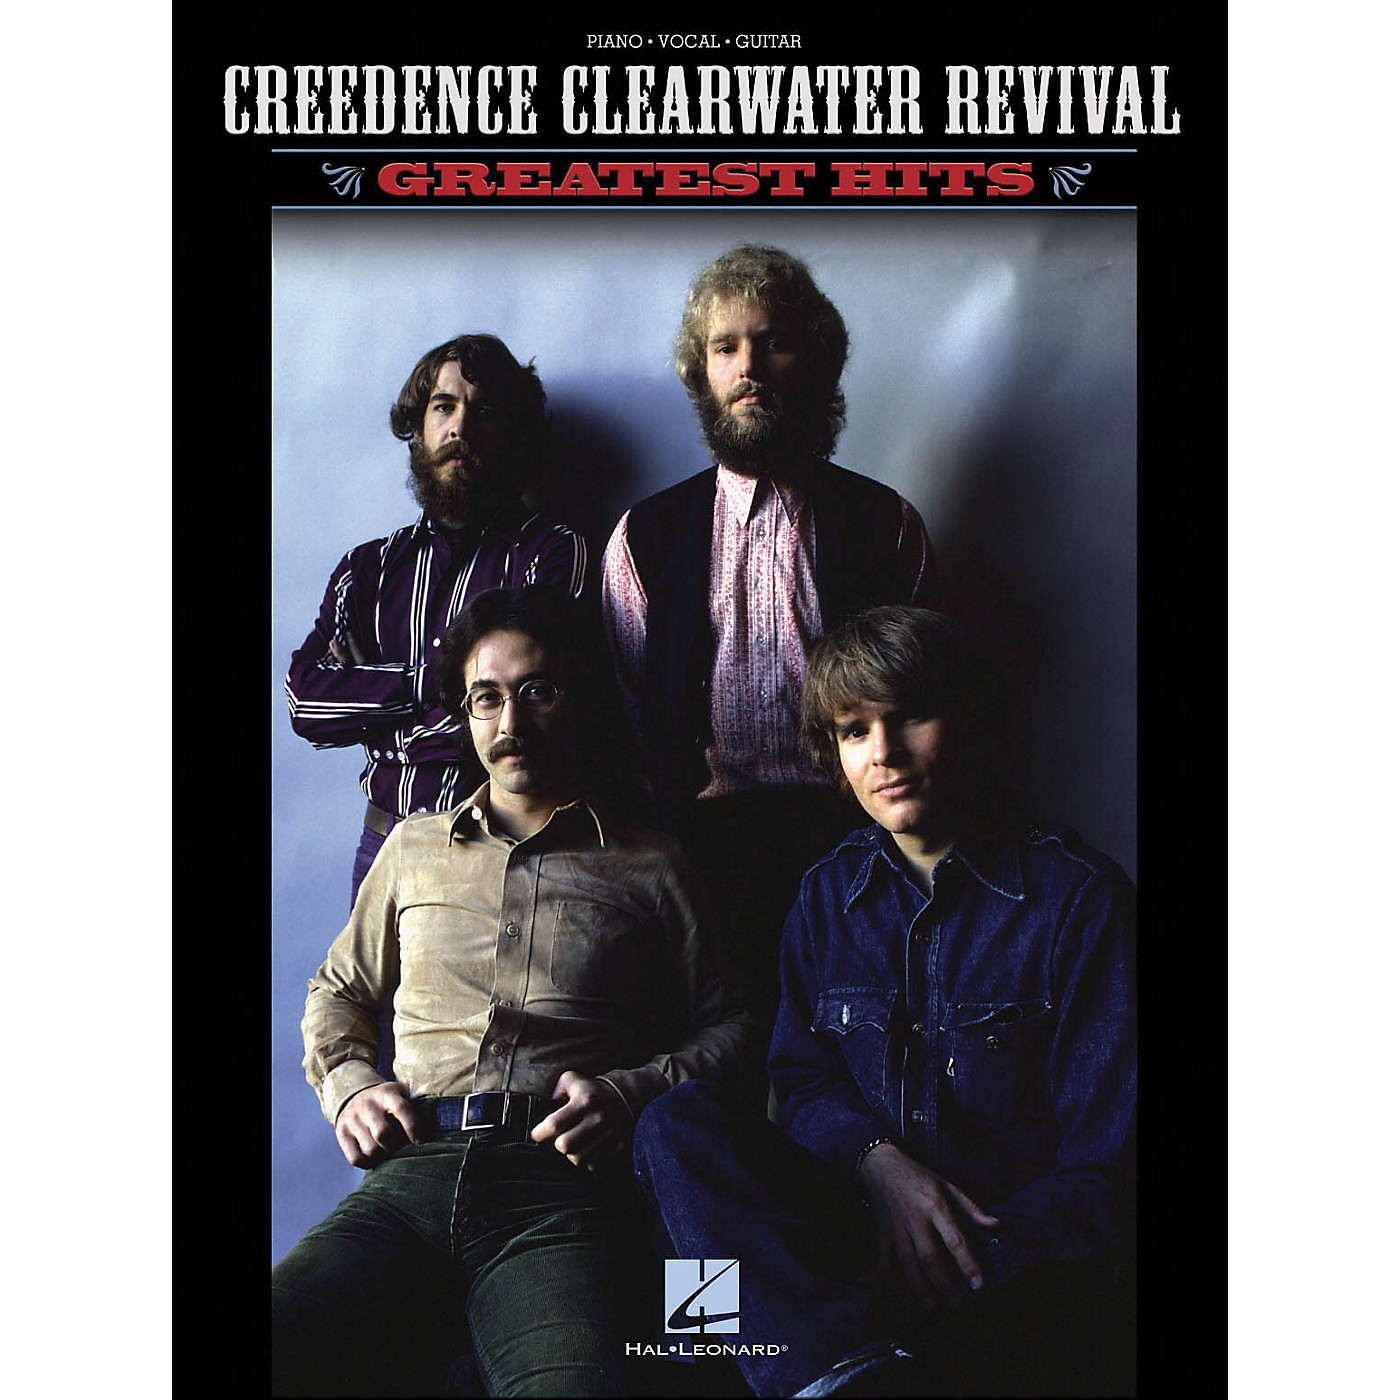 Hal Leonard Creedence Clearwater Revival Greatest Hits arranged for piano, vocal, and guitar (P/V/G) thumbnail